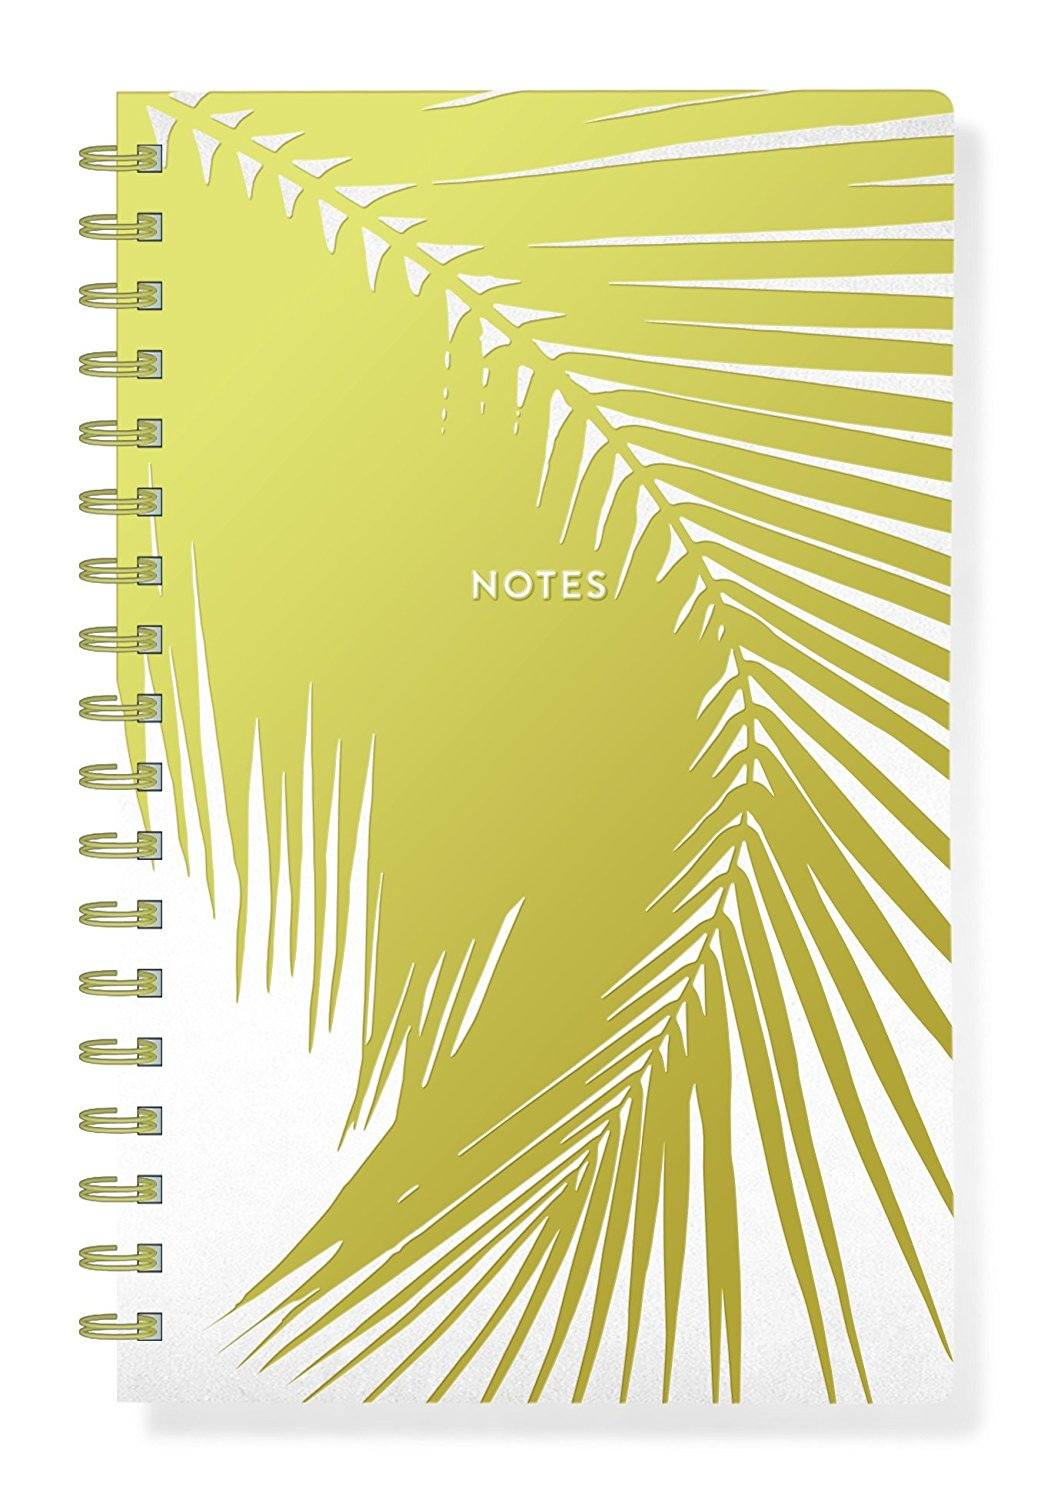 """FRINGE STUDIO In Simple Palm Faux Leather Journal, Spiral Binding, 6"""" x 9.5"""", 160 Lined Pages (896001)"""